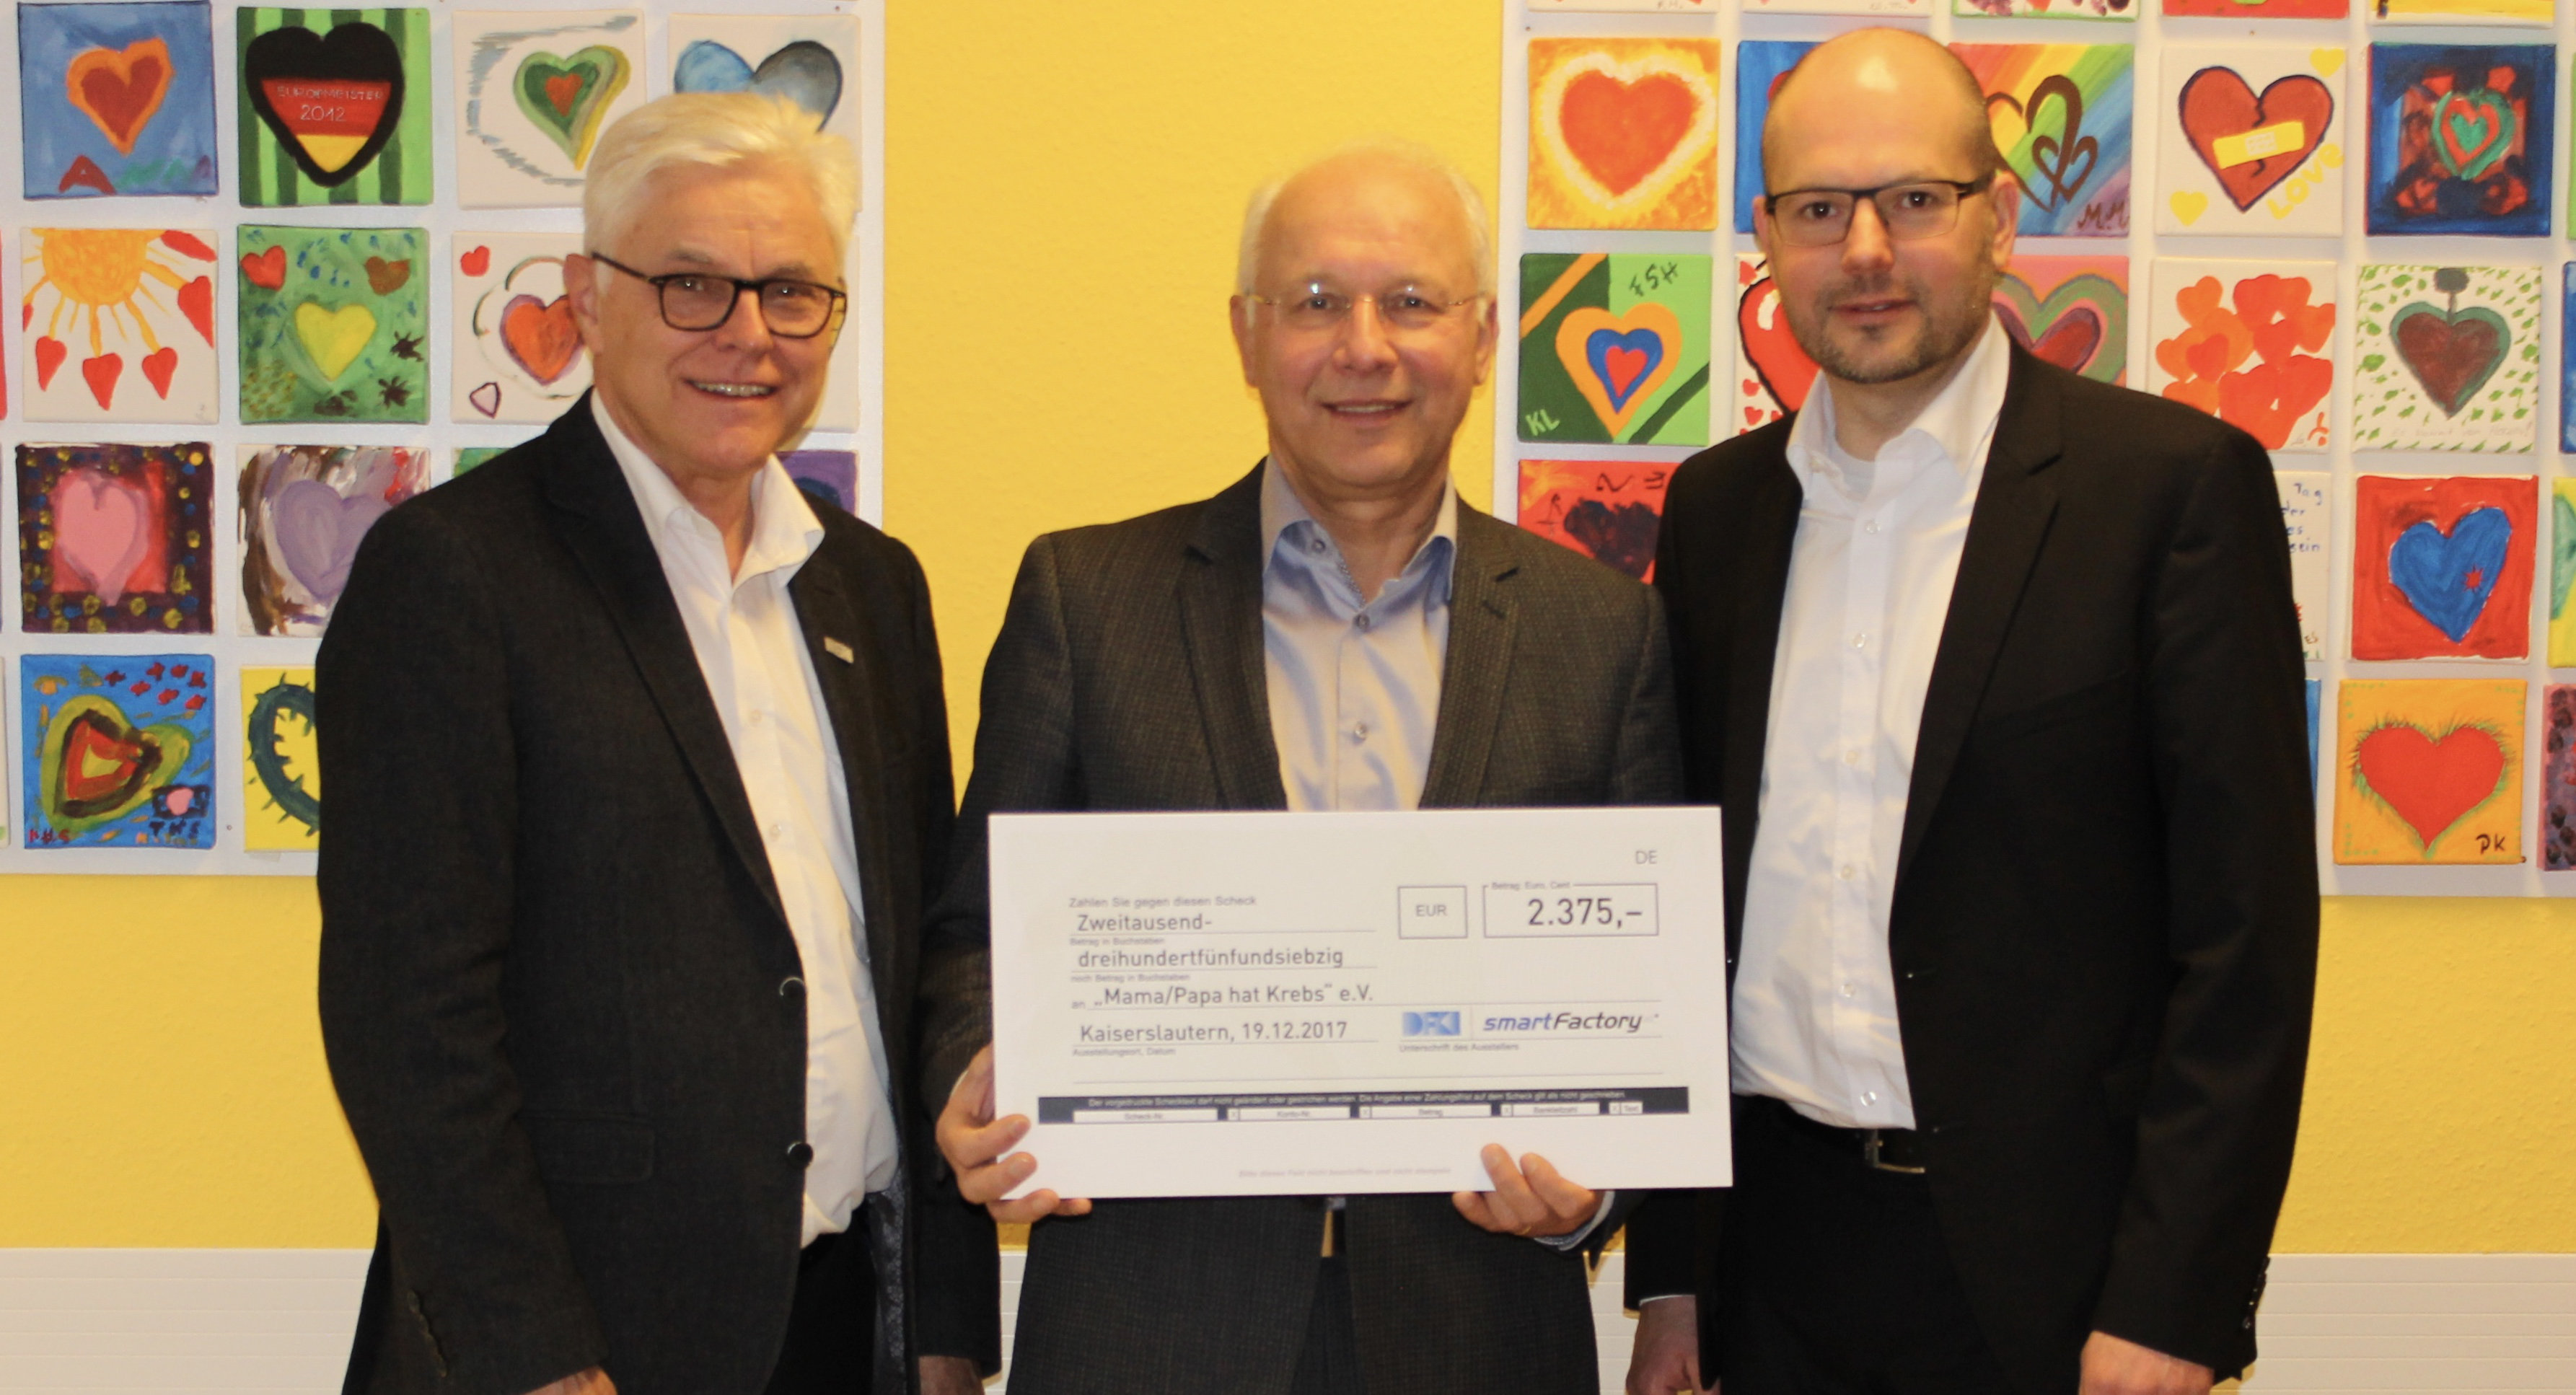 The non-profit organization Mama/Papa hat Krebs (Mama/Papa has Cancer) received the charitable donation of more than 2,375 euros from SmartFactoryKL. Photo: SmartFactoryKL